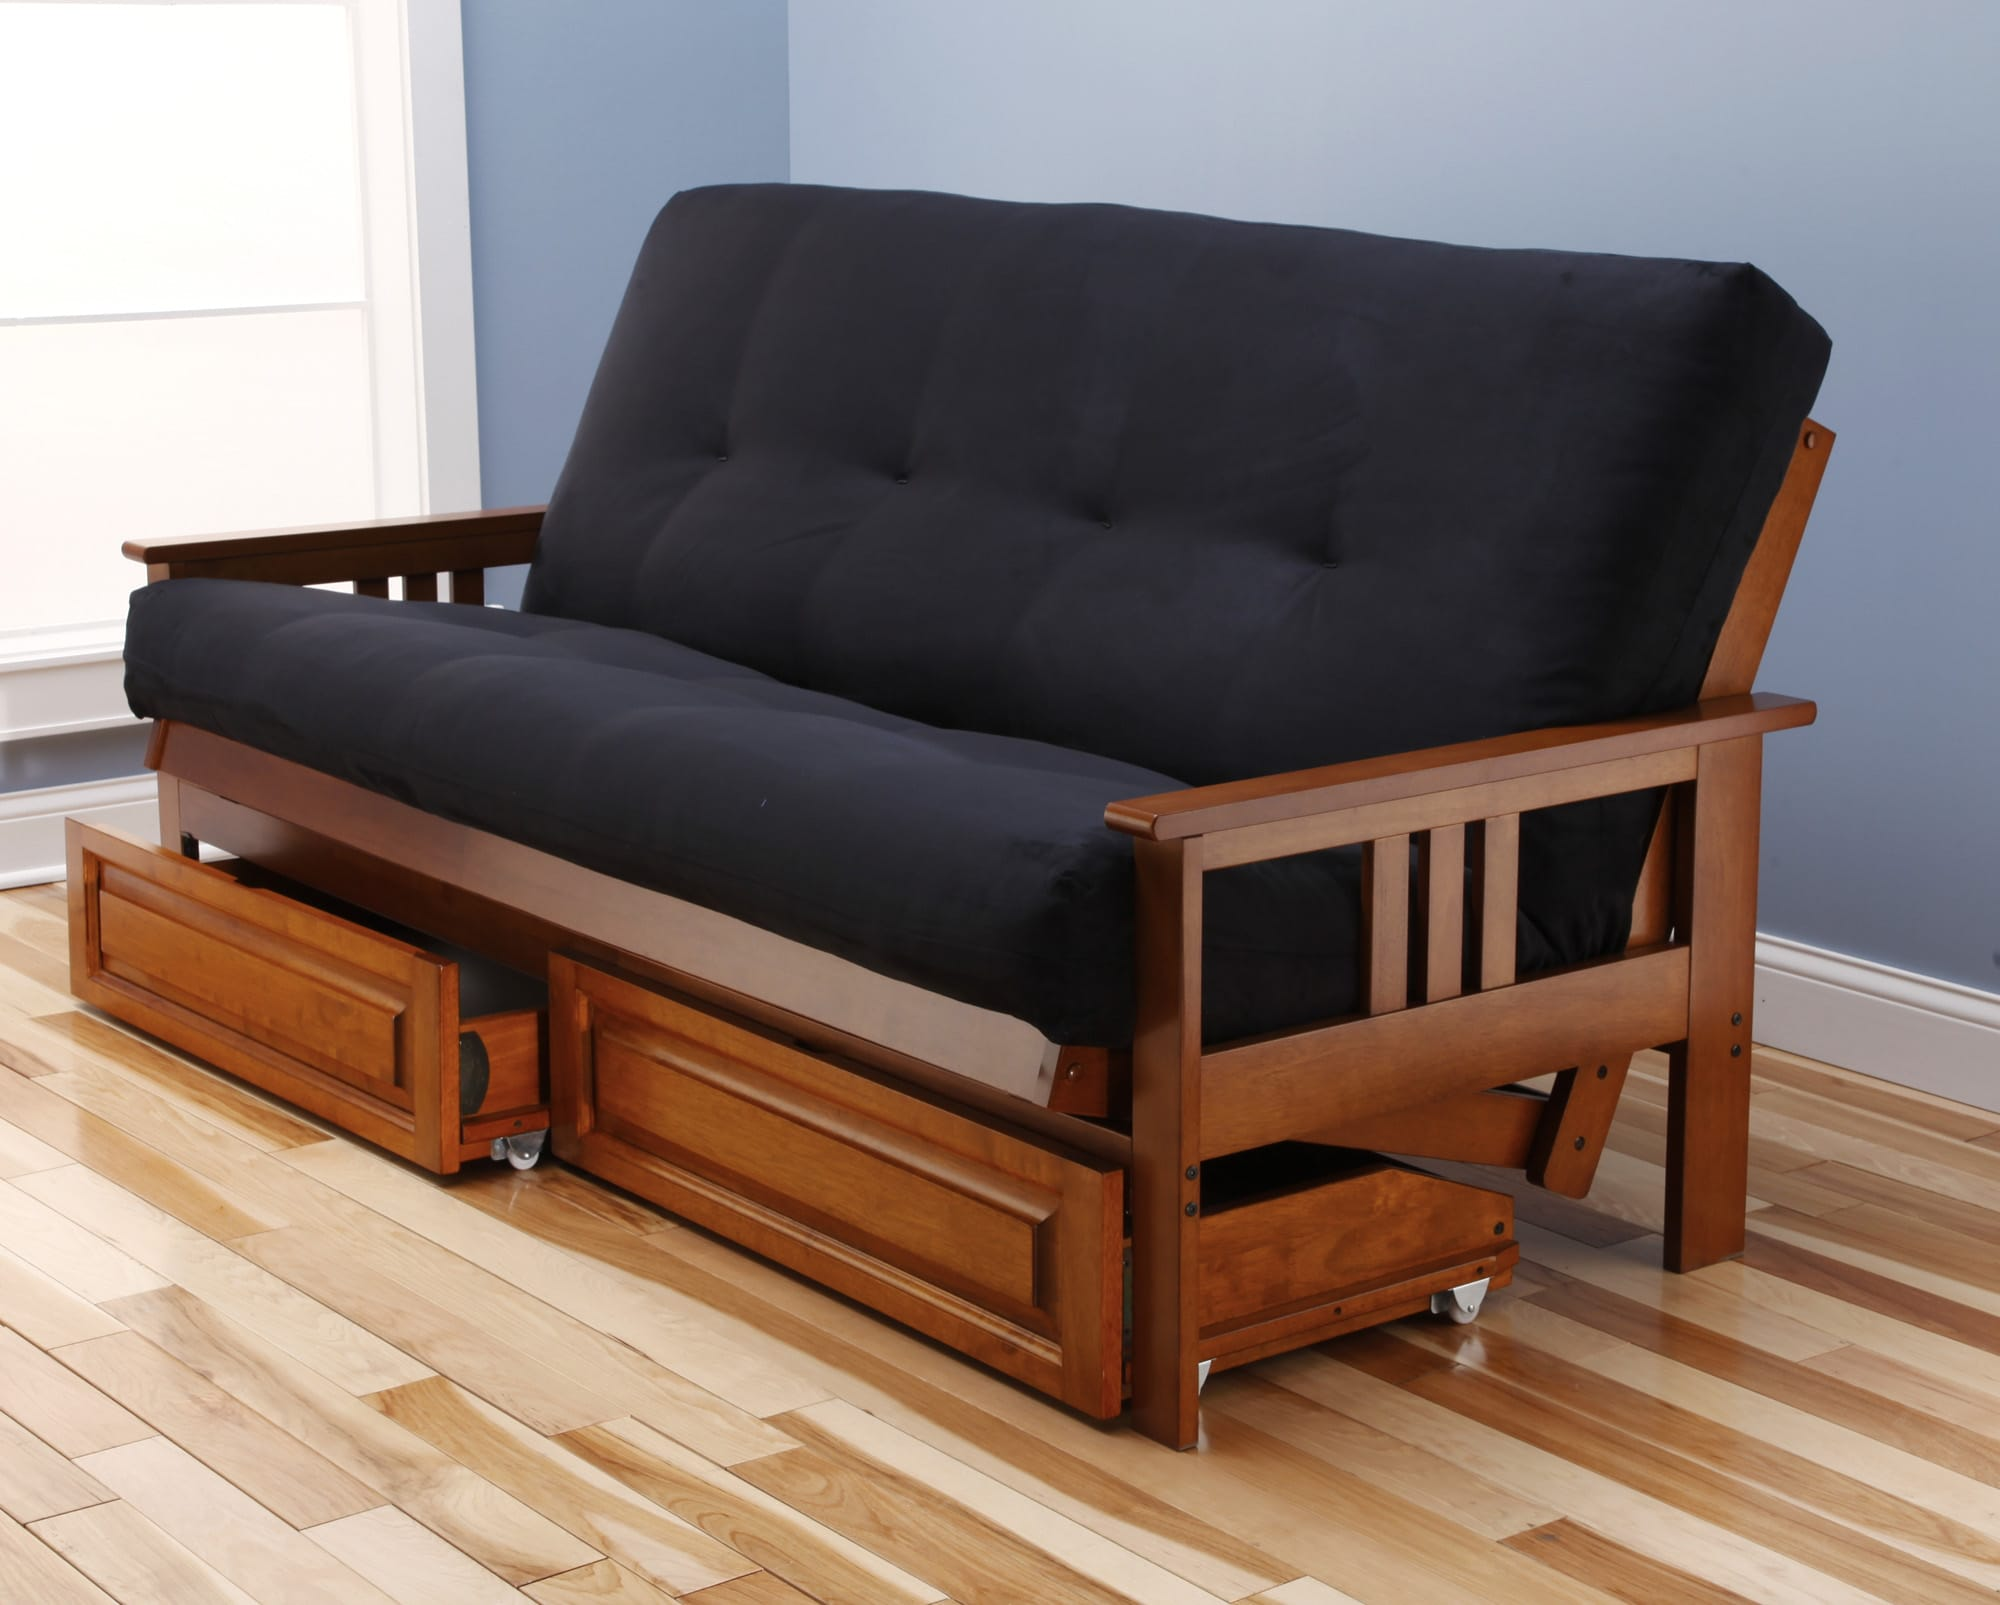 Monterey futon frame barbados by kodiak for Mission style futon assembly instructions